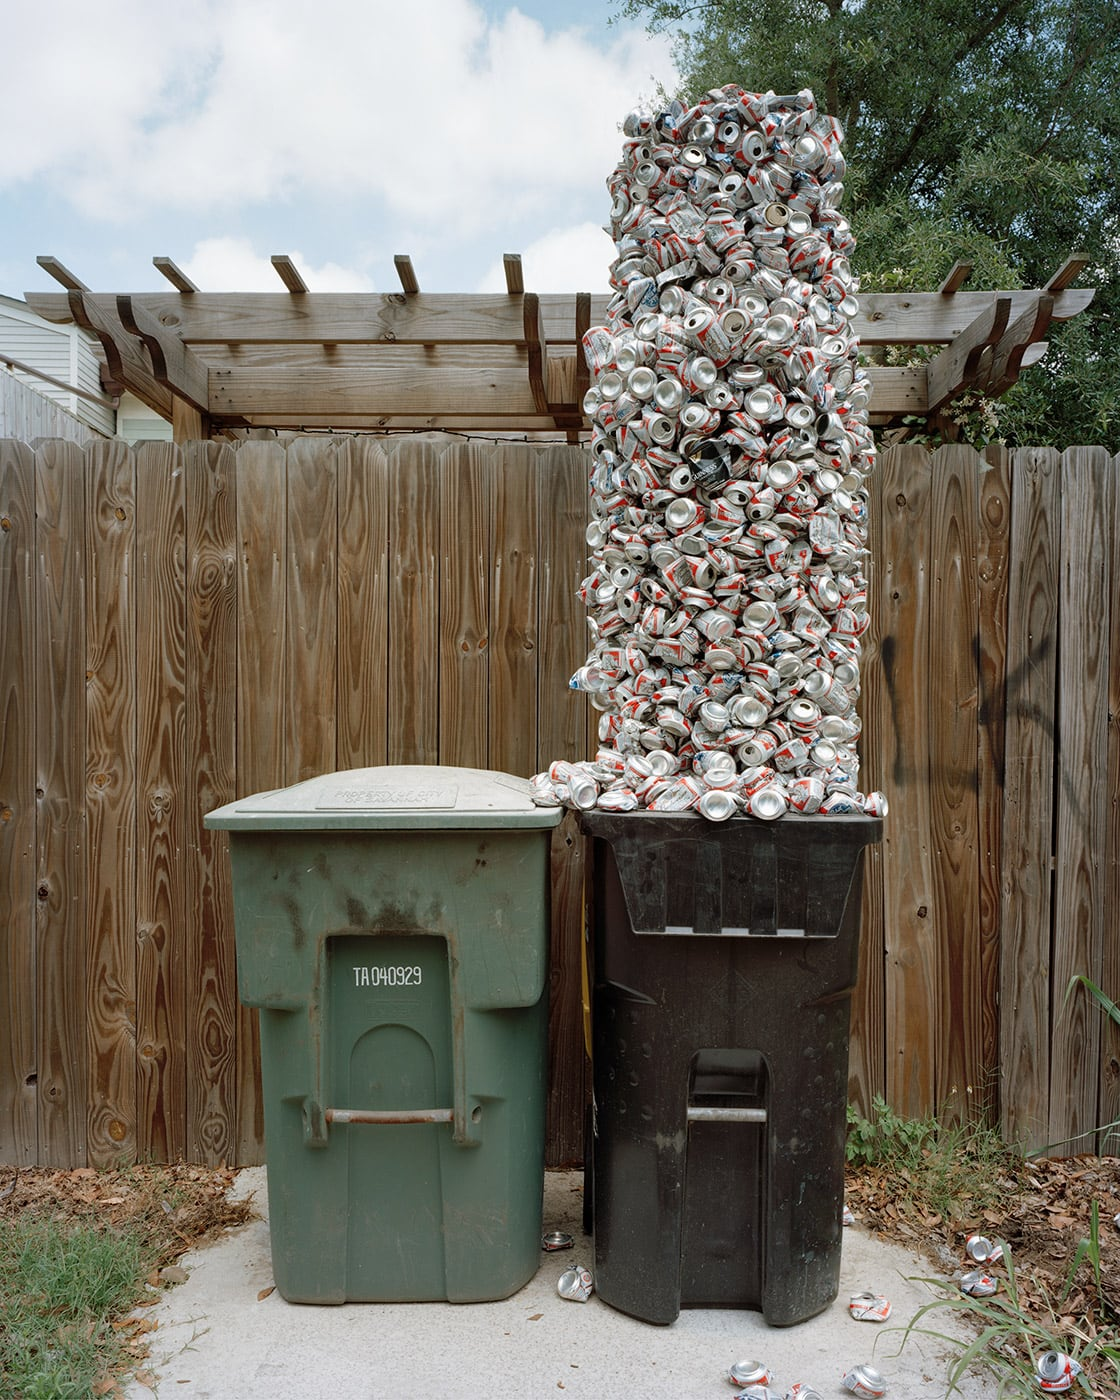 Beer Can Totem from the series Material World by David Welch (US)